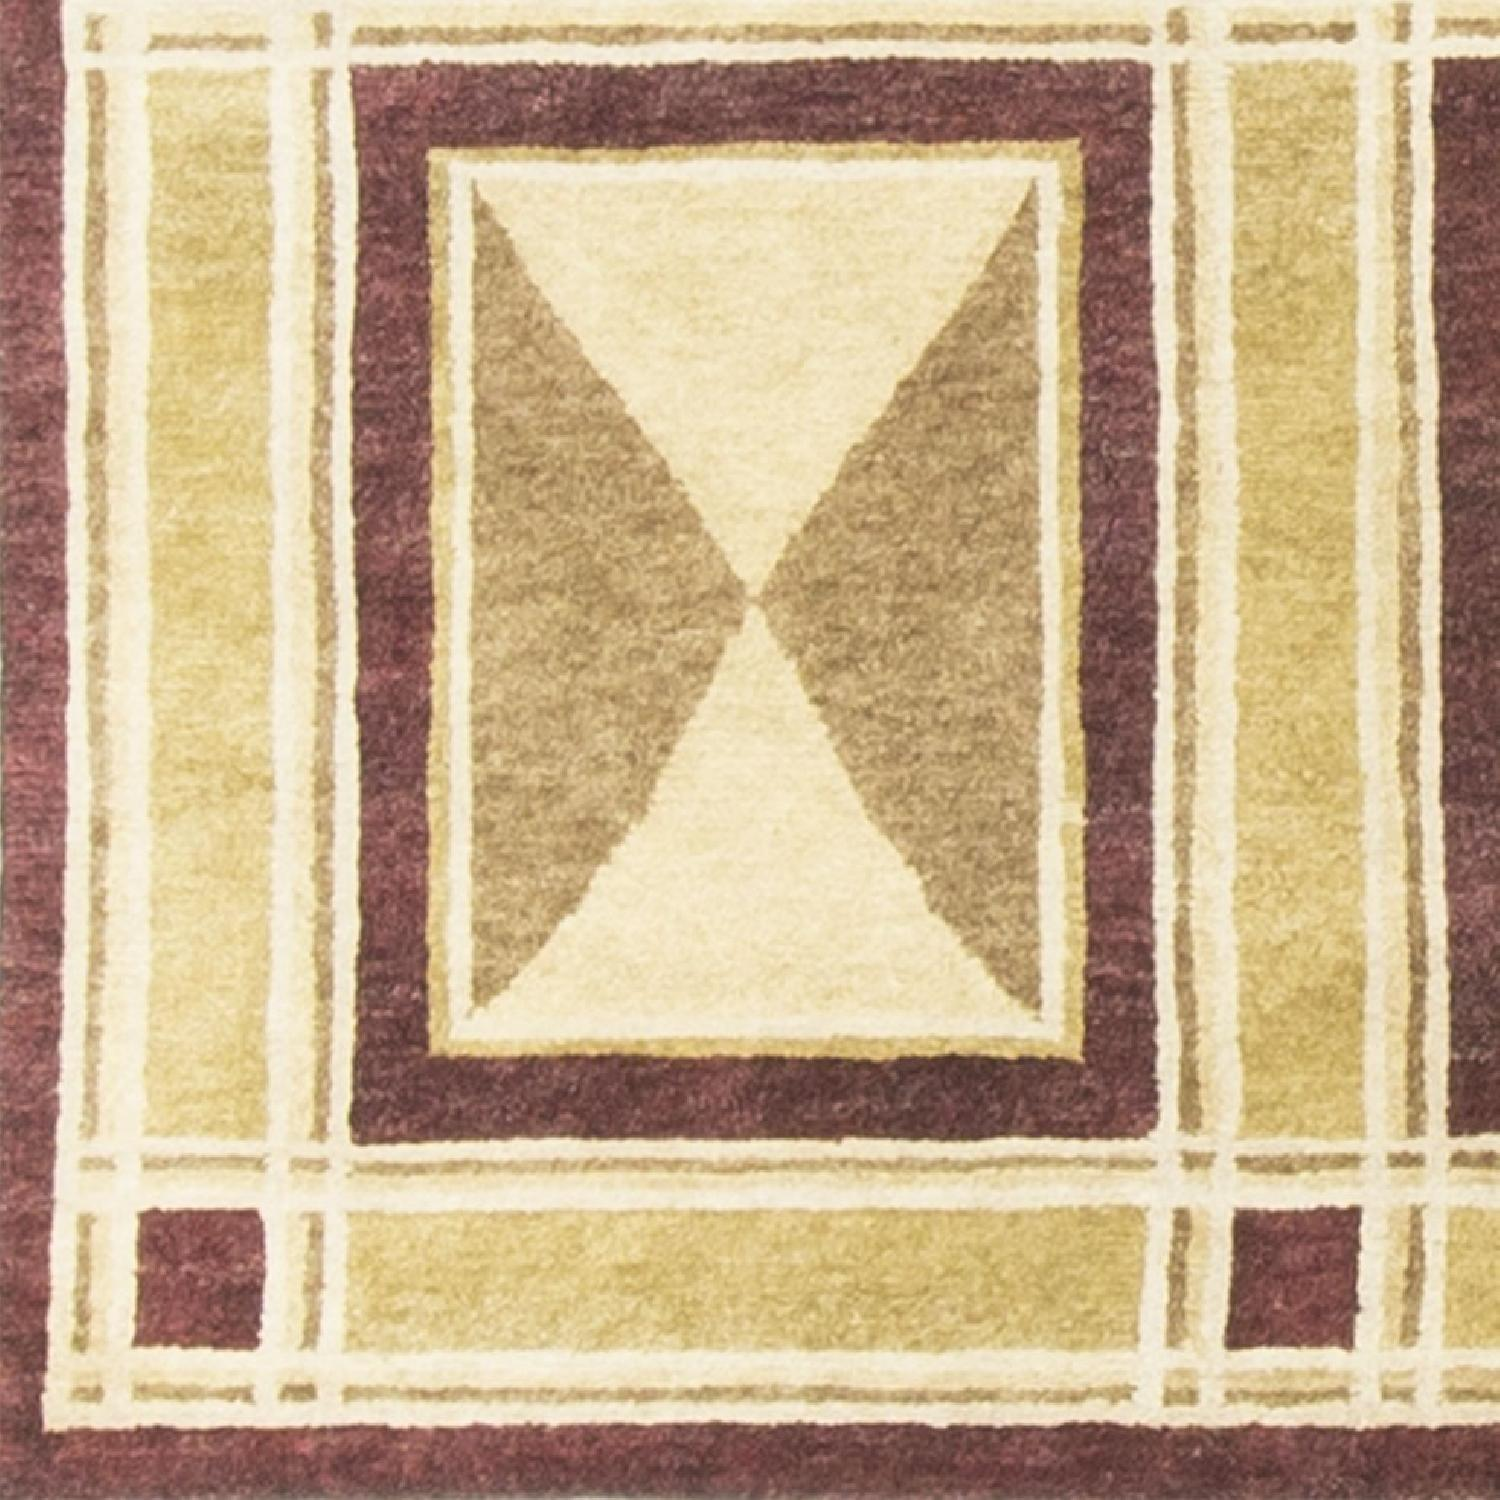 Modern Contemporary Hand Knotted Wool Rug in Red/Beige/Brown - image-2